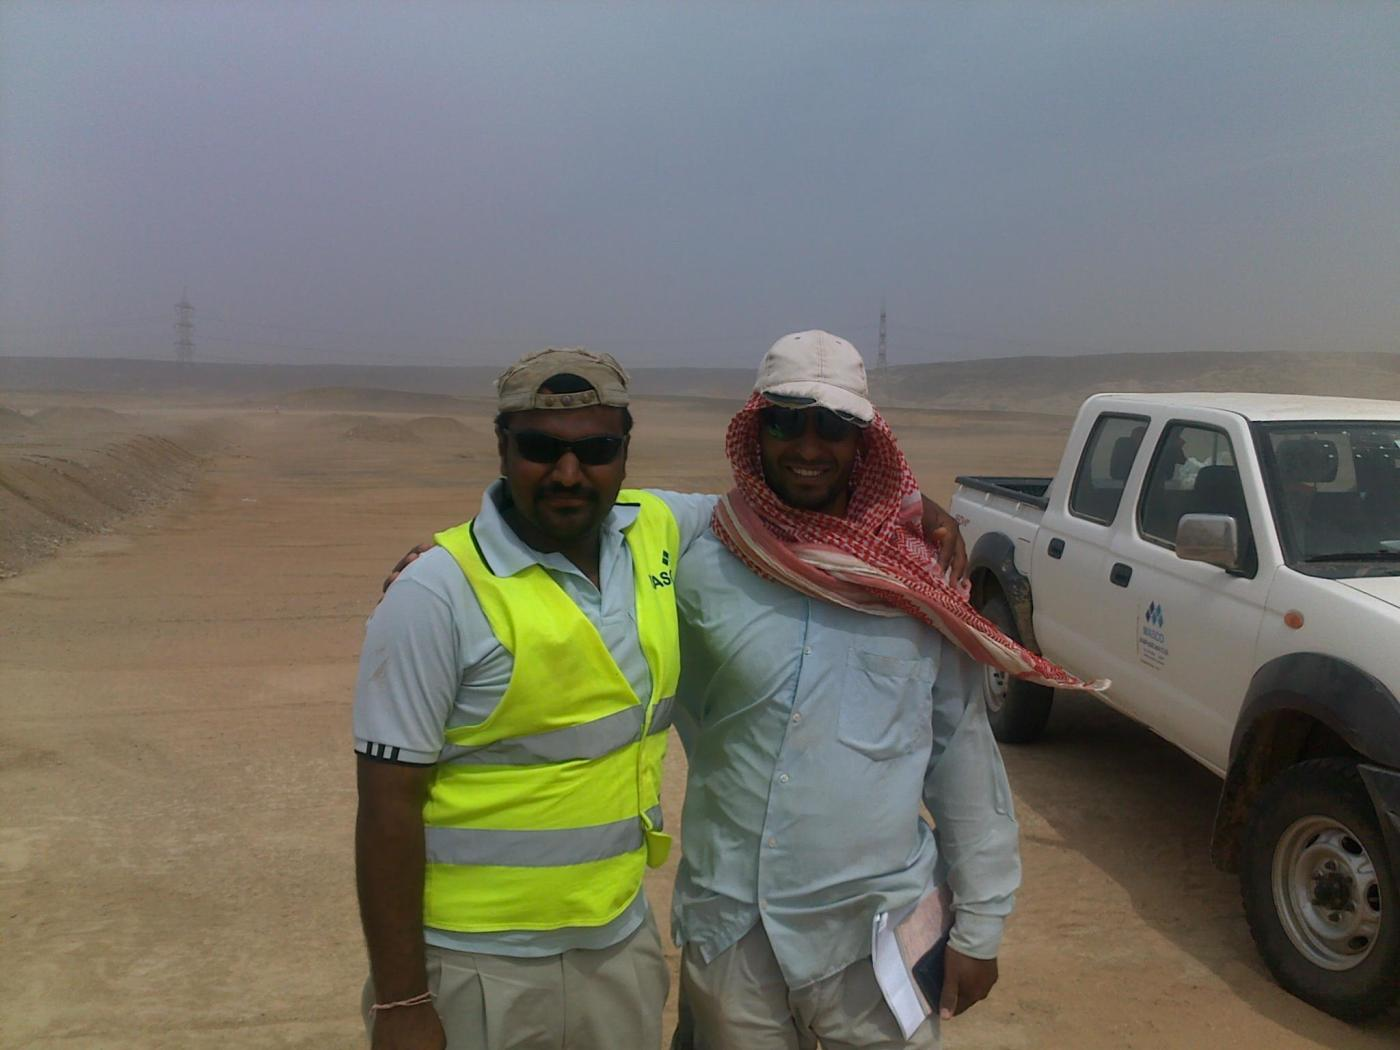 Friends in Surveying